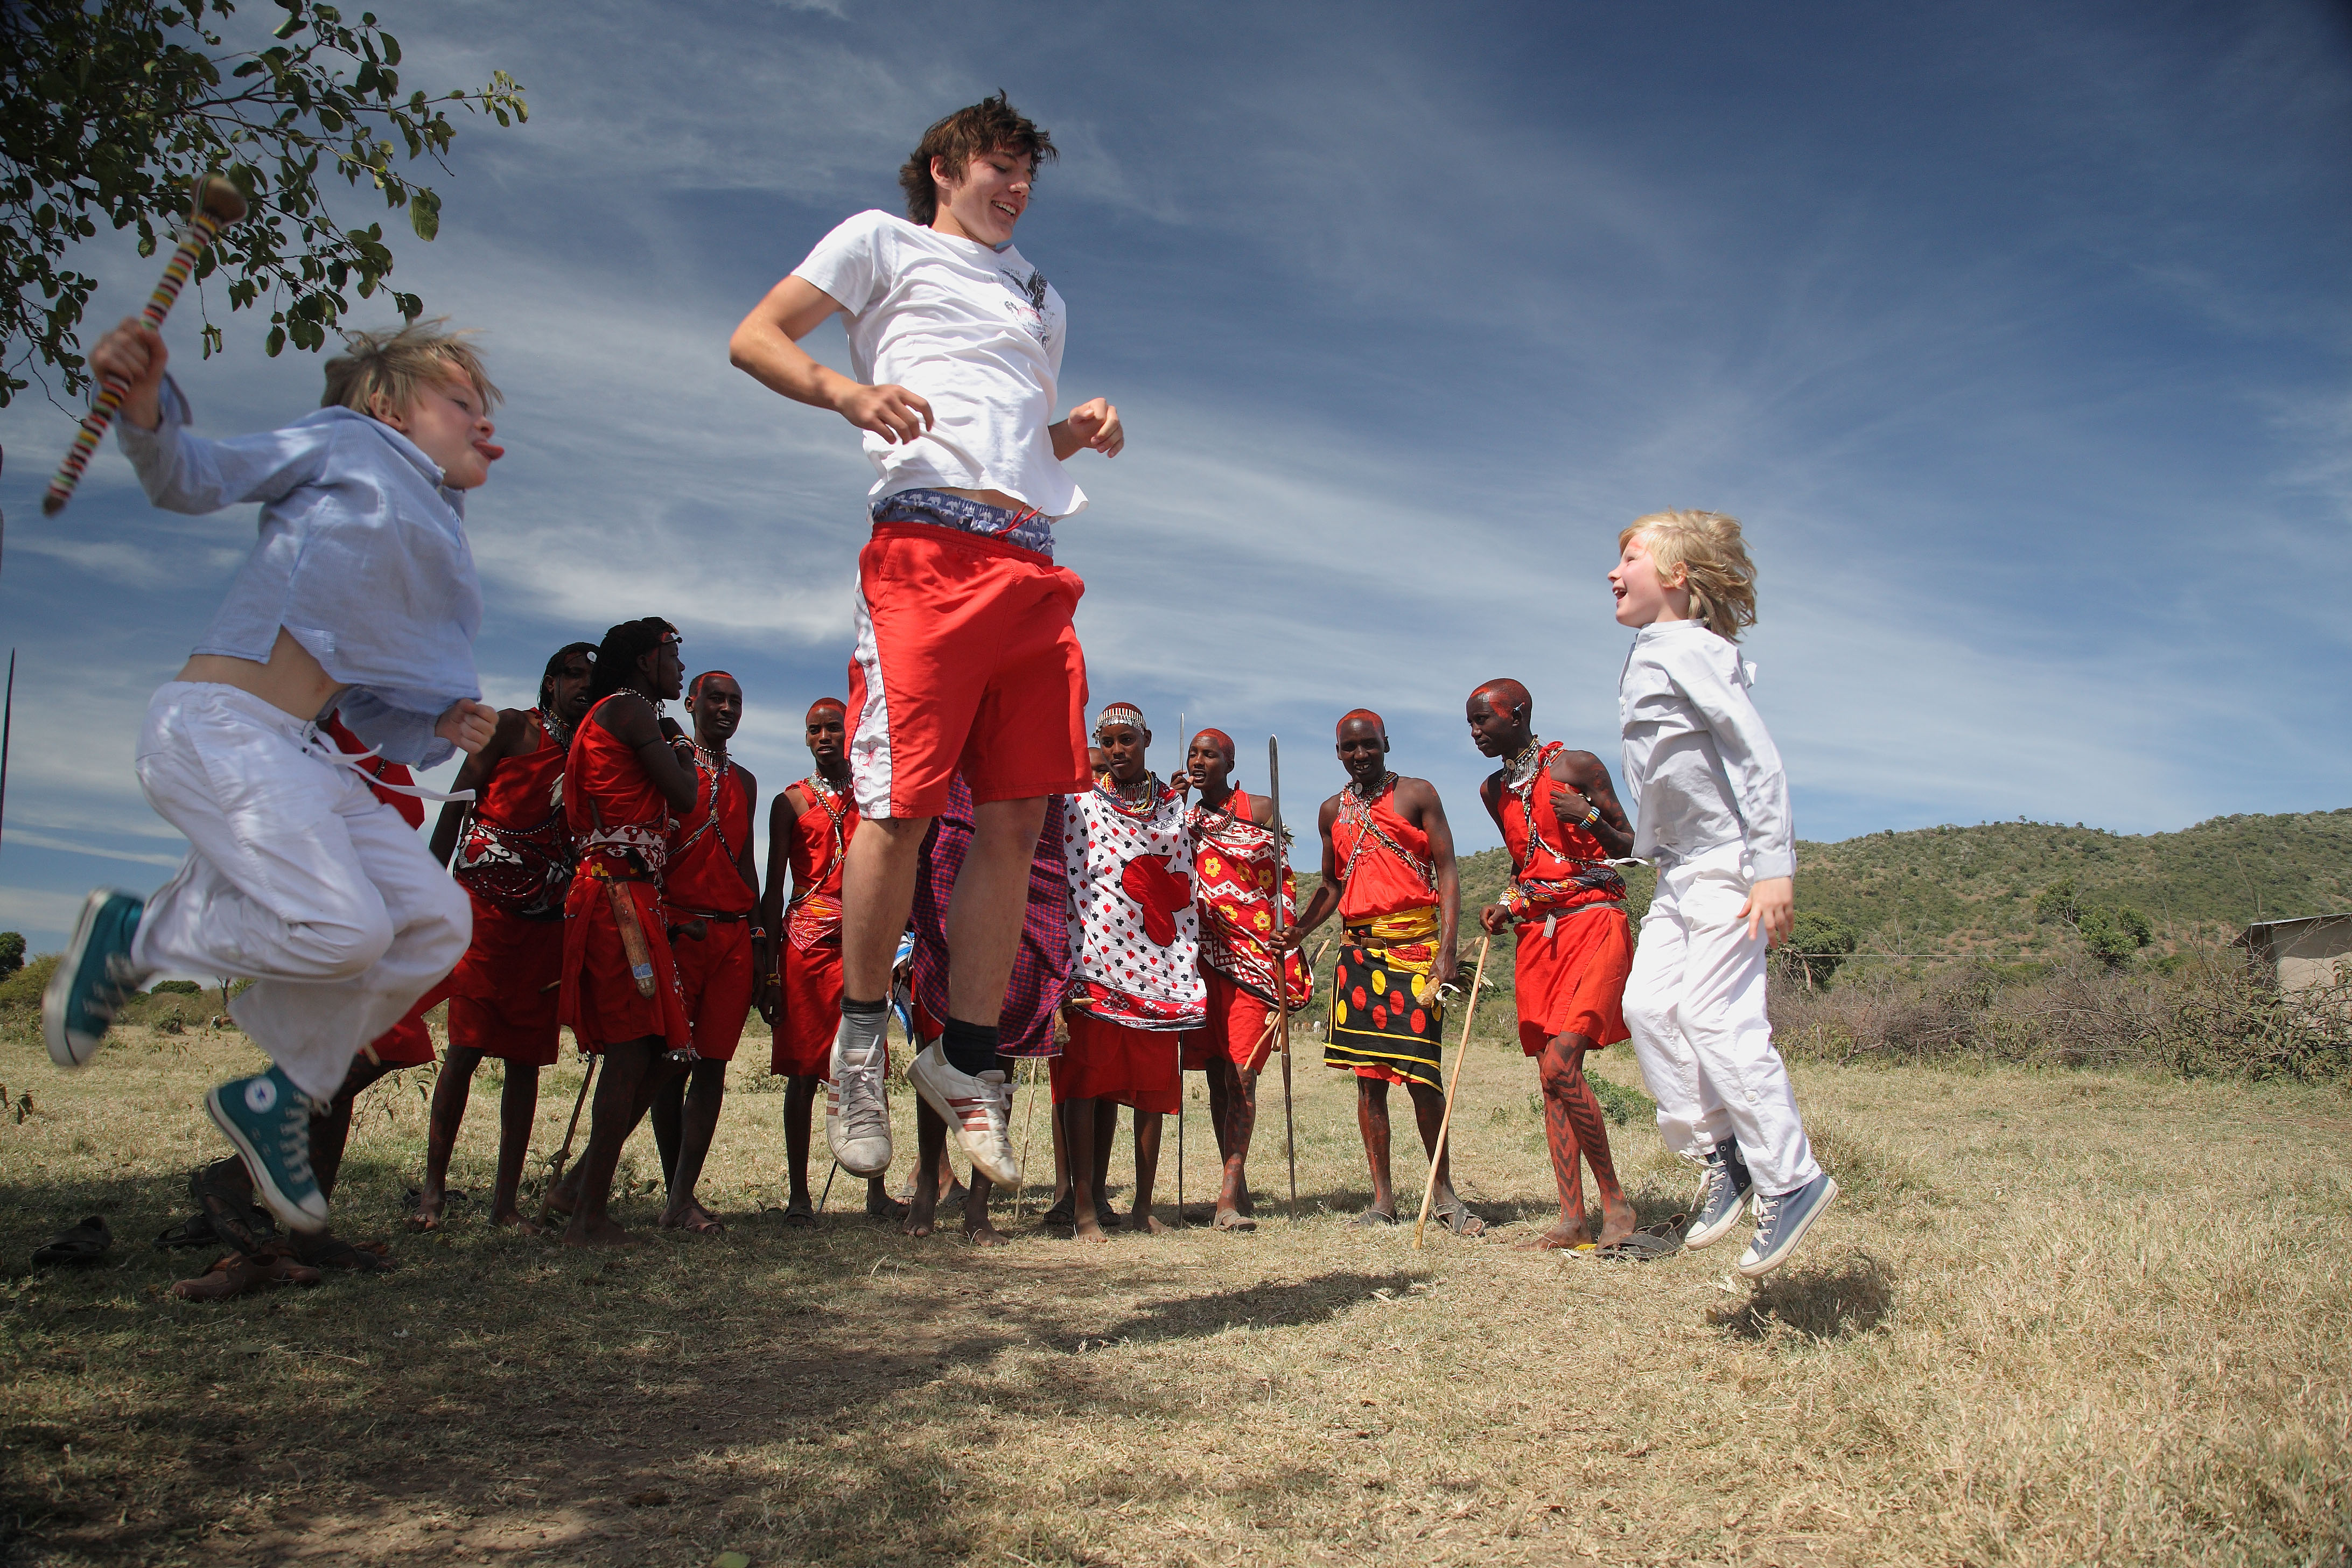 Jumping with the Maasai (1)